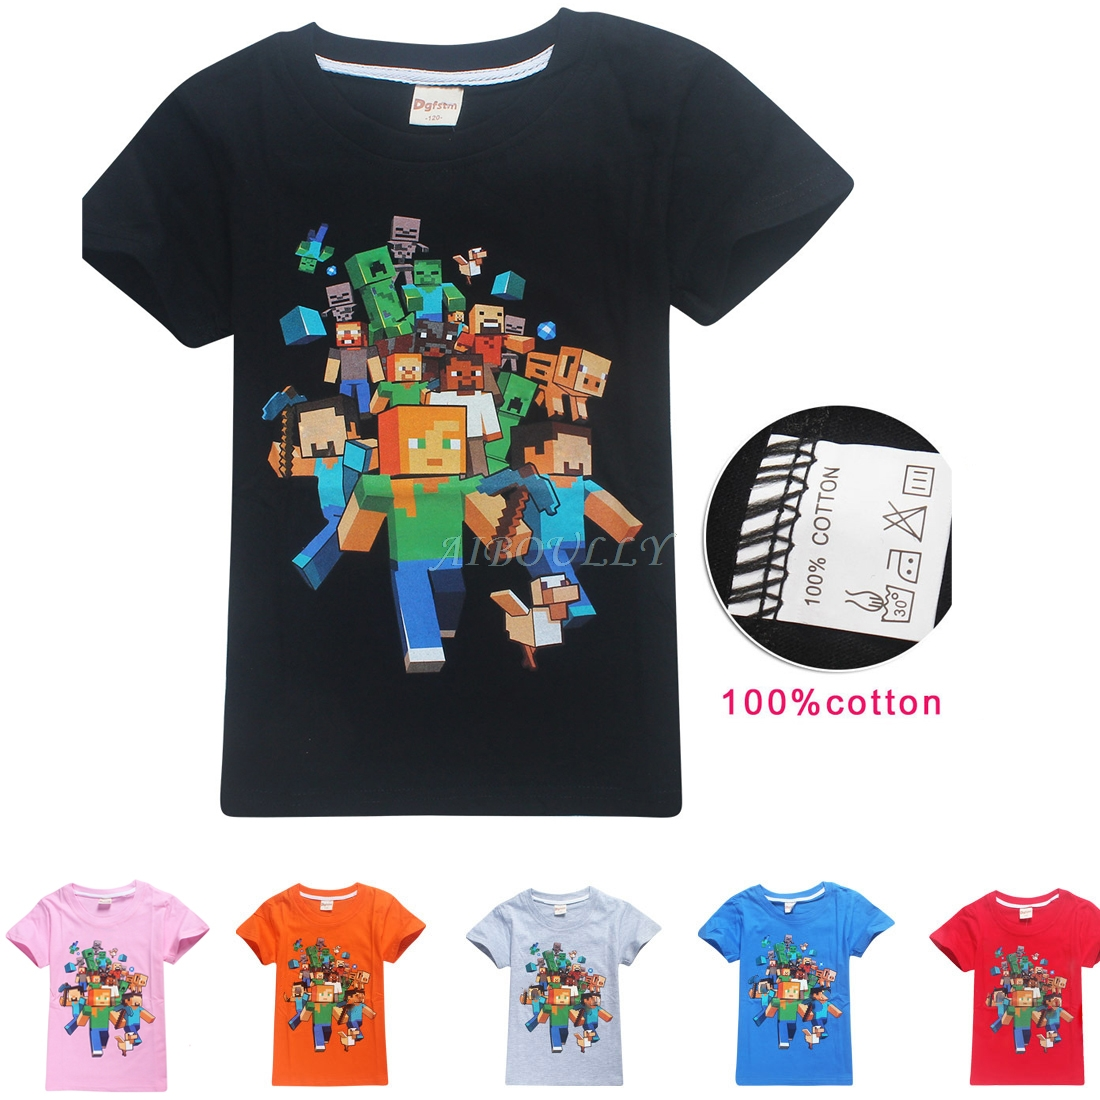 6 Colors Boys Girls Cotton Summer T-shirt Tops Tees Short Sleeve MineCraft T Shirt Boys Girls O-Neck Tees Tops 4-14T KIDS Gifts new hot summer kids boys girls cartoon tees tshirt kids t shirt short sleeved tops cotton clothes pattern cactus cicishop